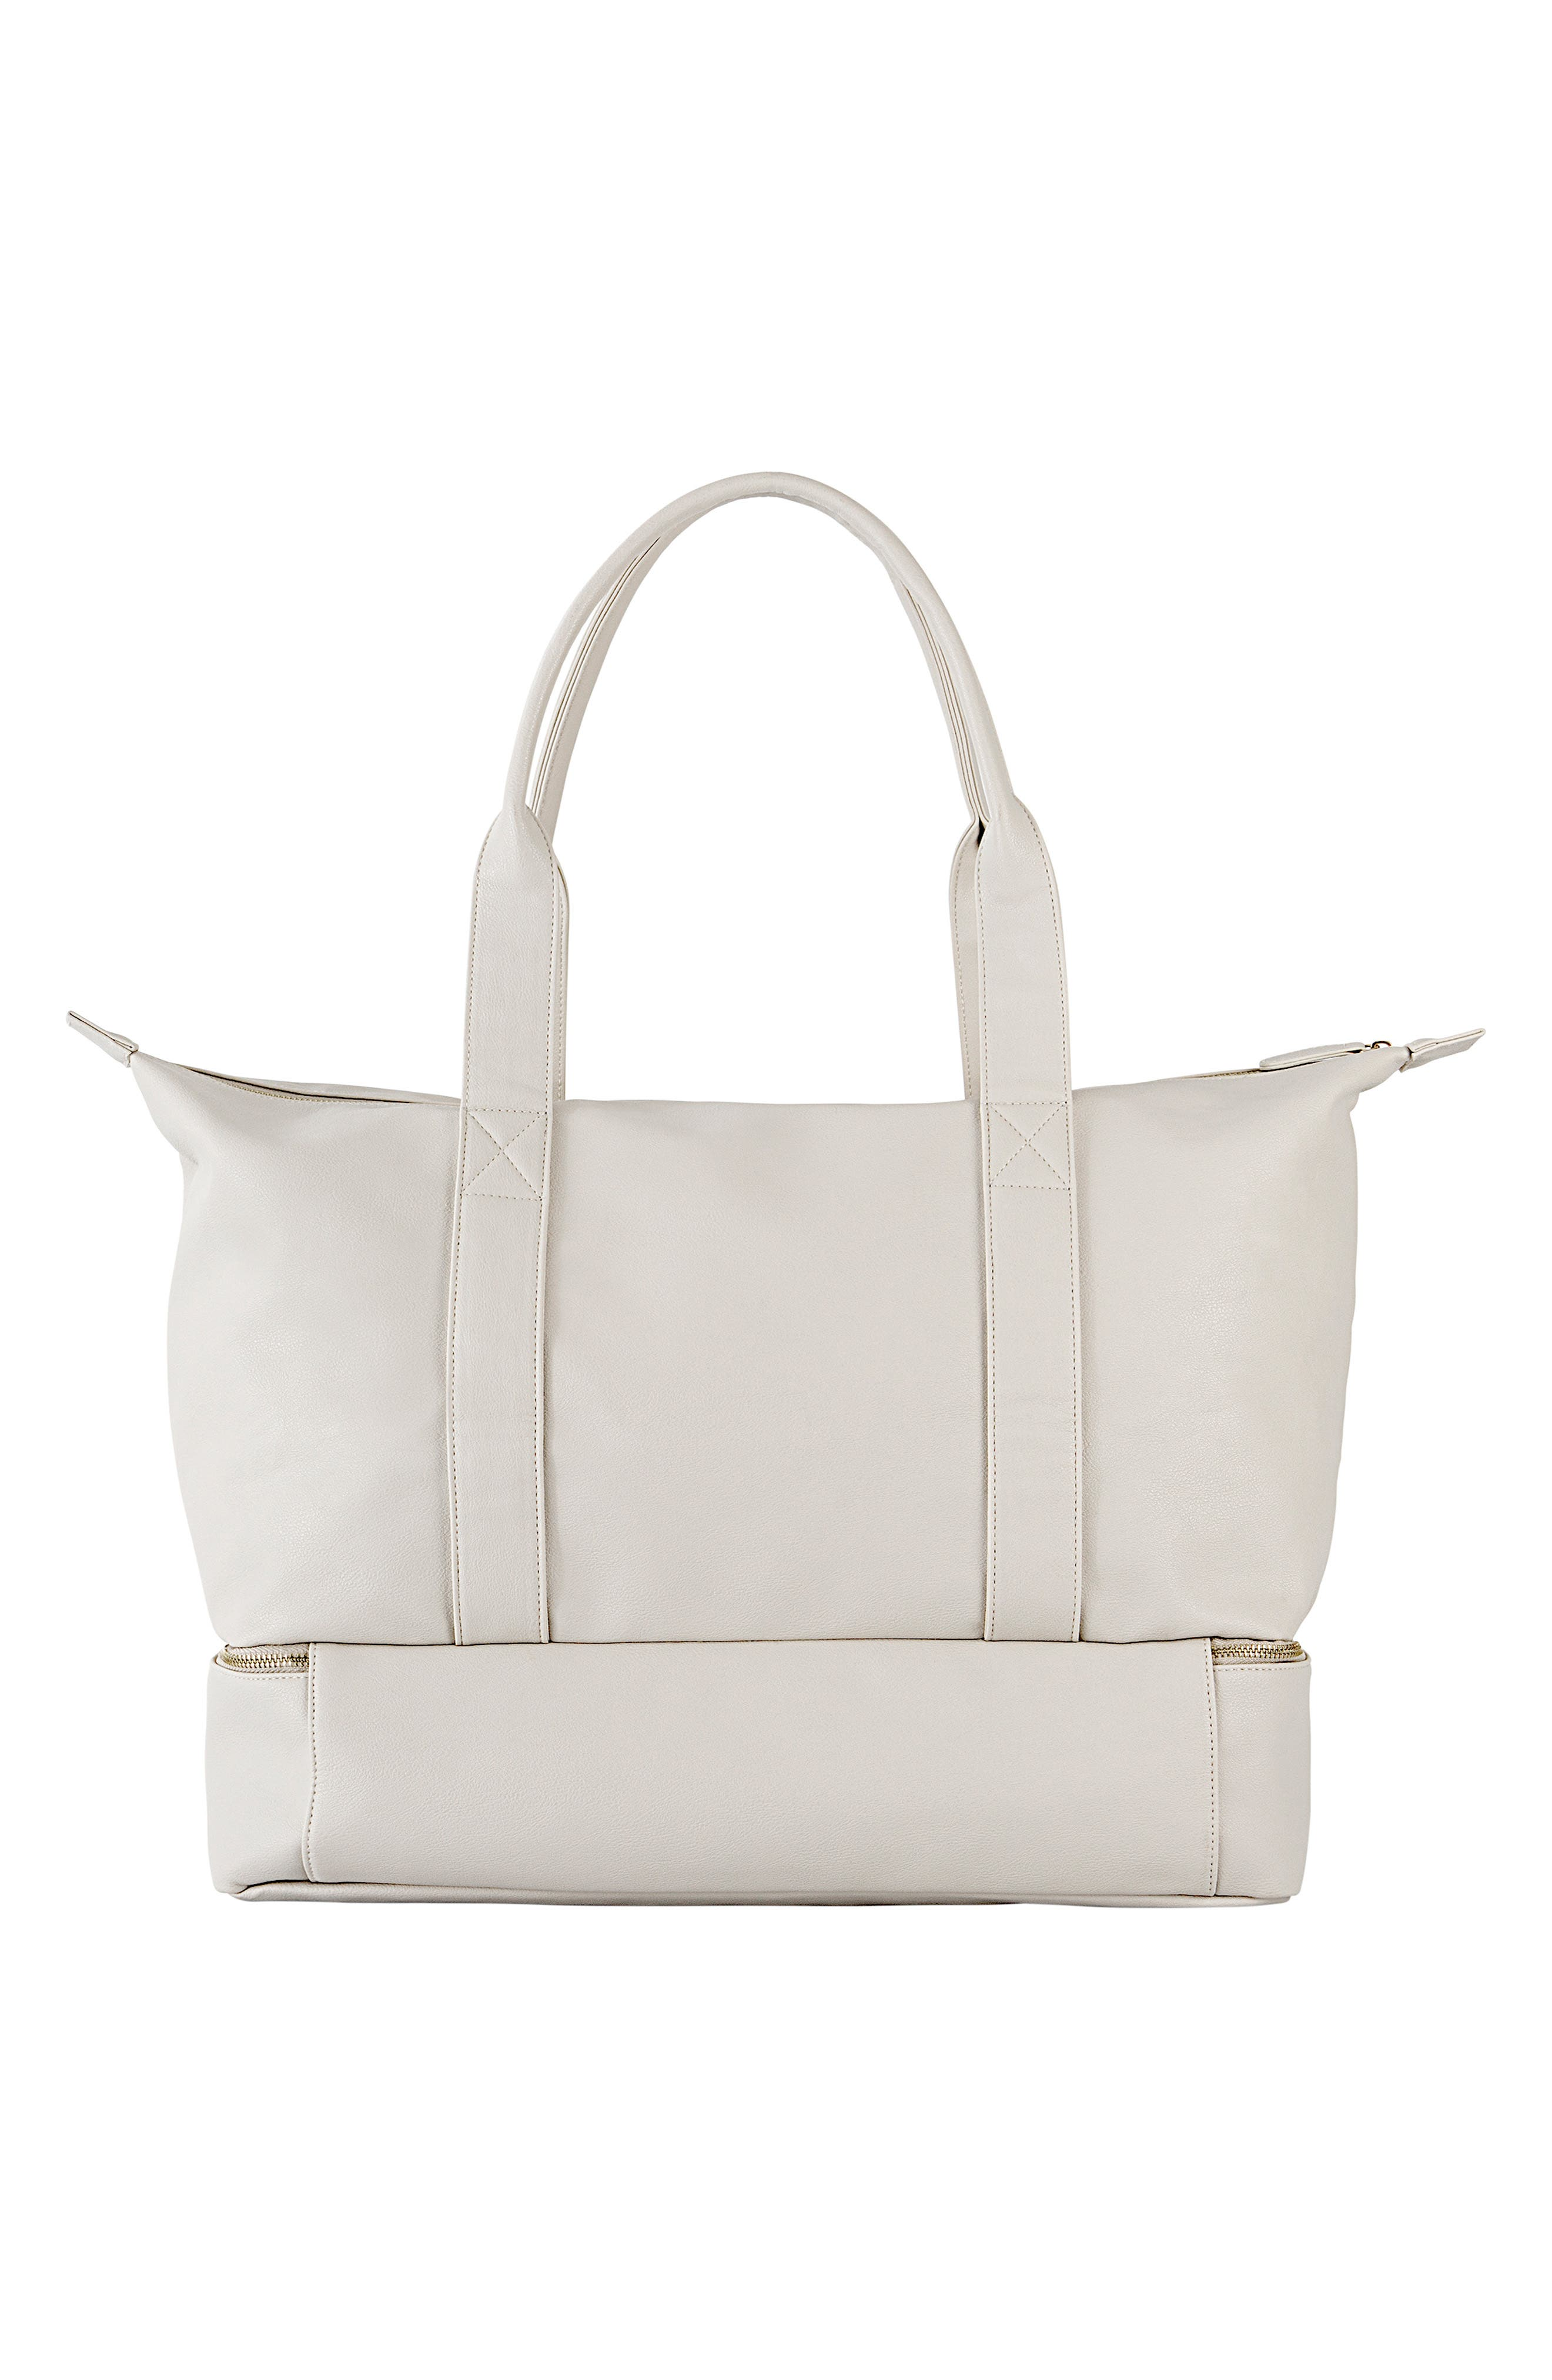 CATHY'S CONCEPTS, Monogram Faux Leather Tote with Shoe Base, Alternate thumbnail 2, color, GRAY